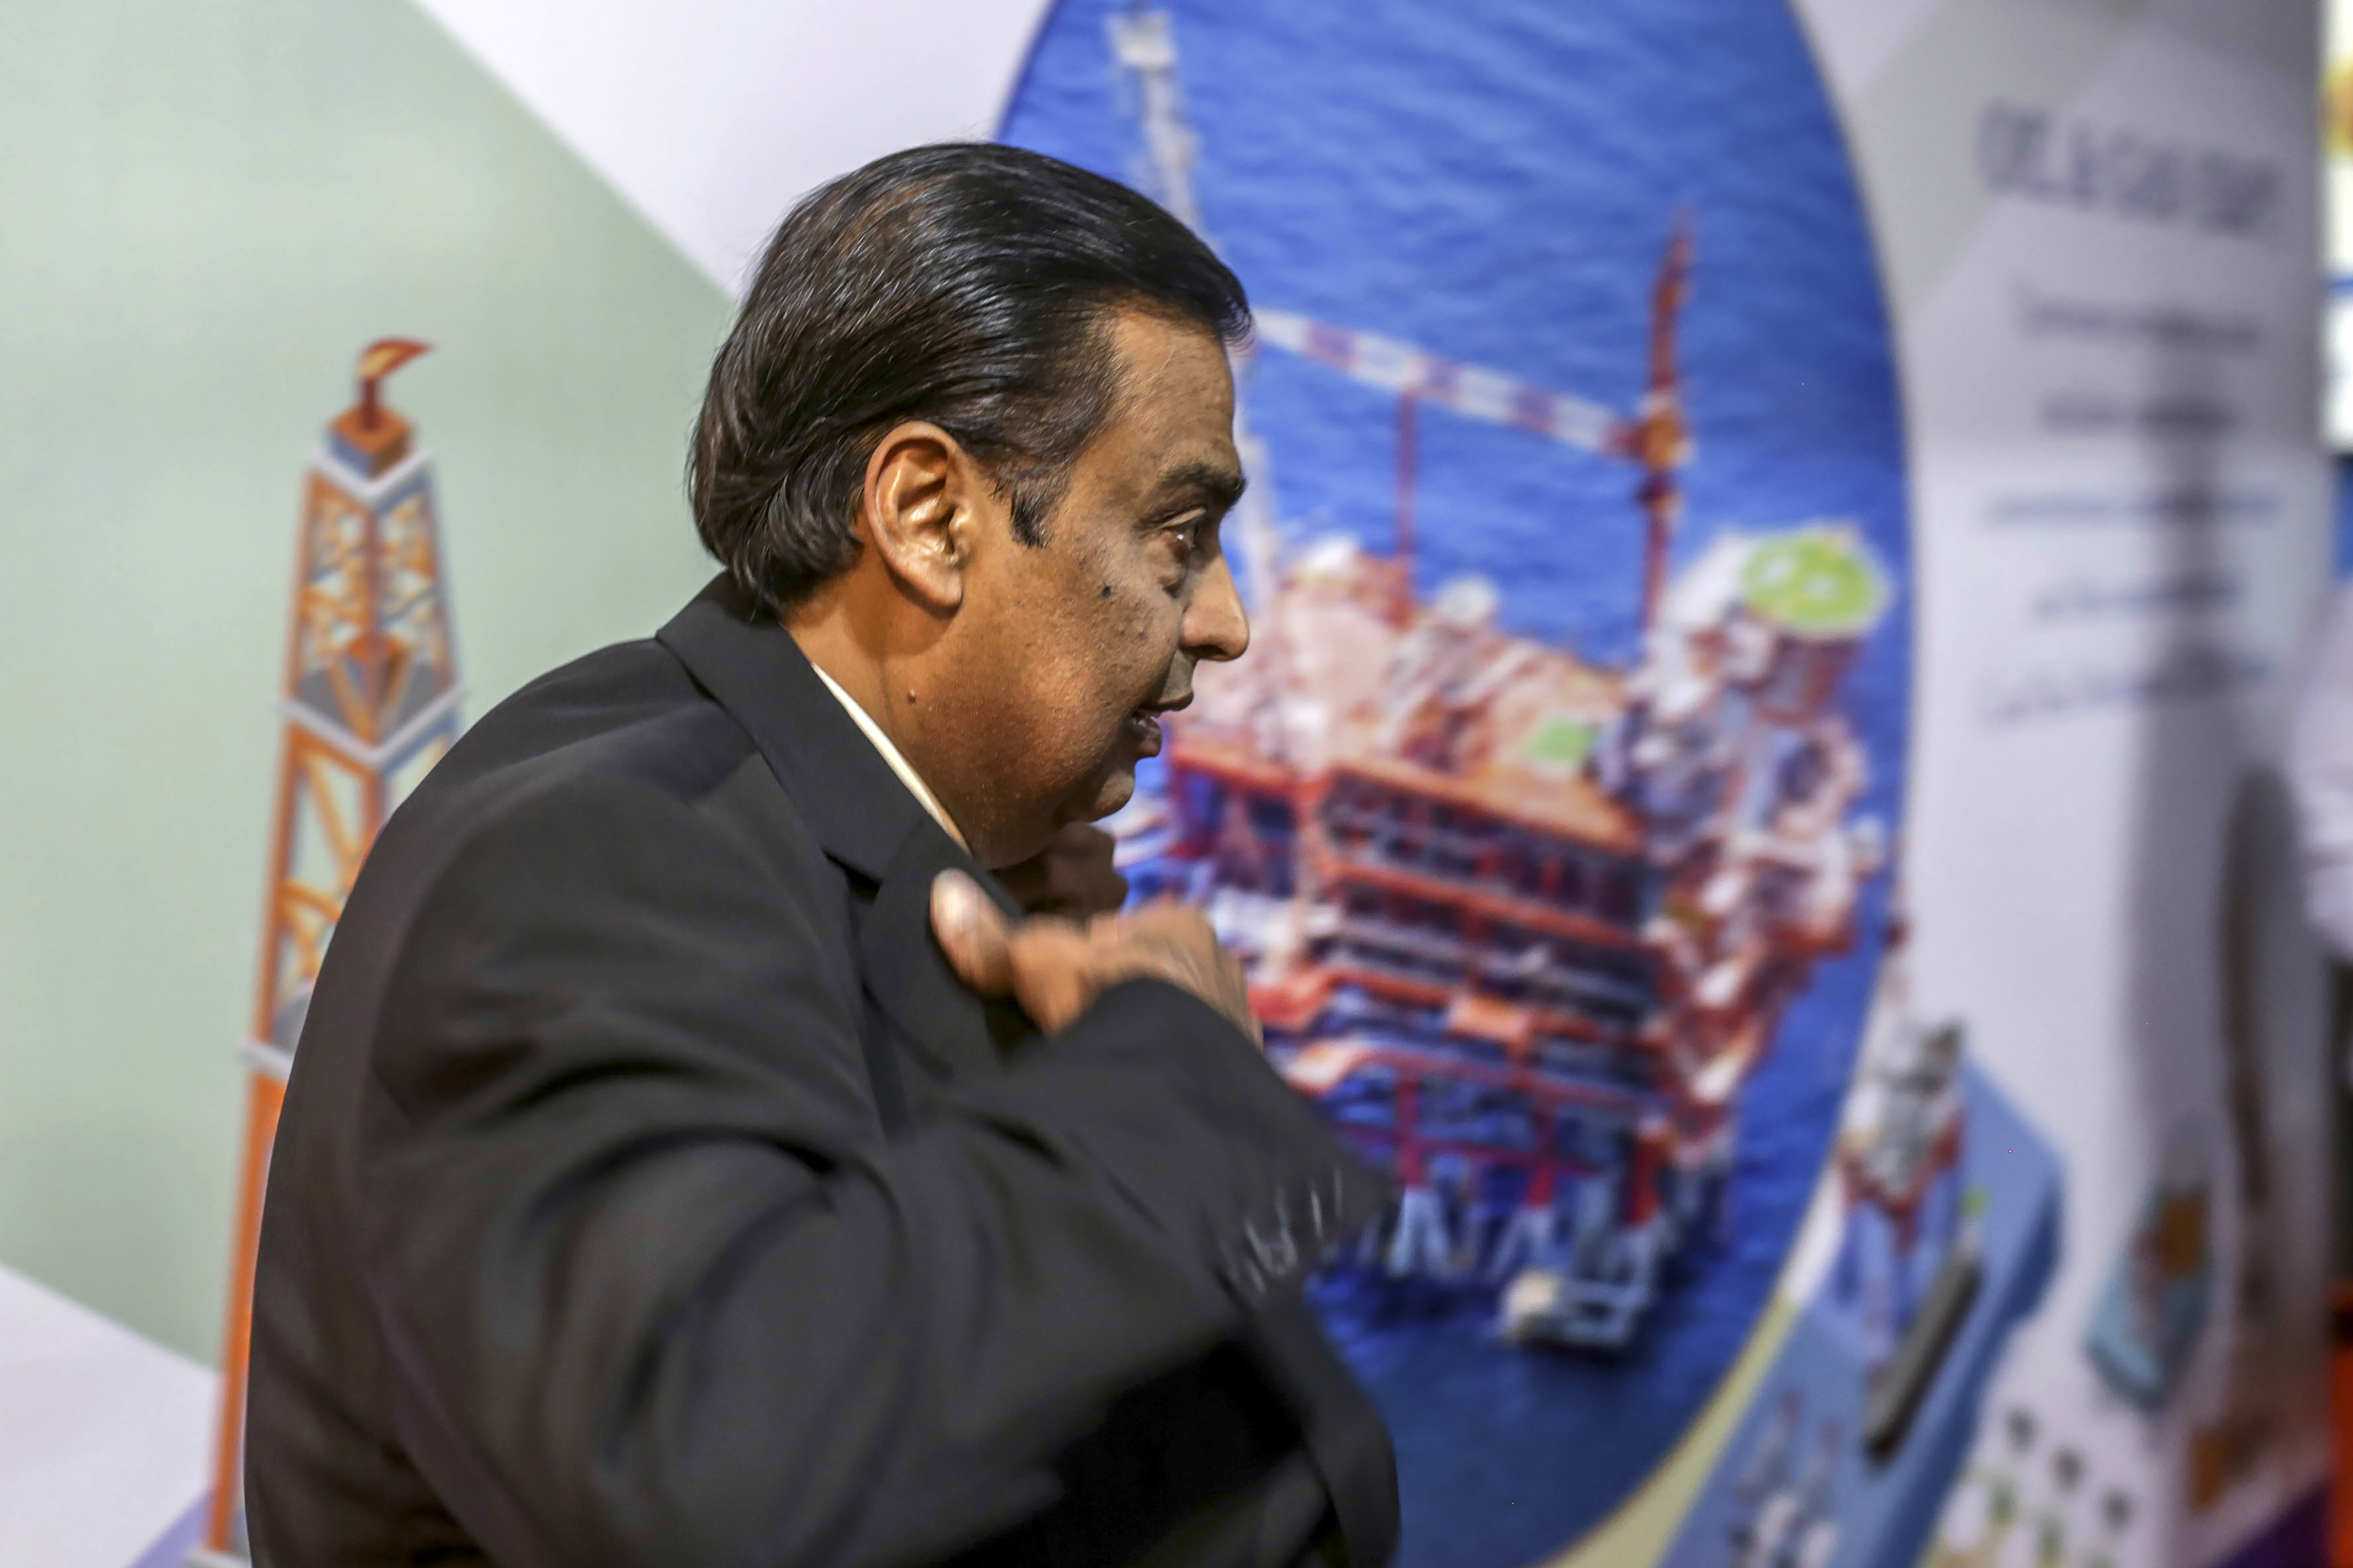 Reliance Jio Platforms says $15.2 billion fundraise is good for now